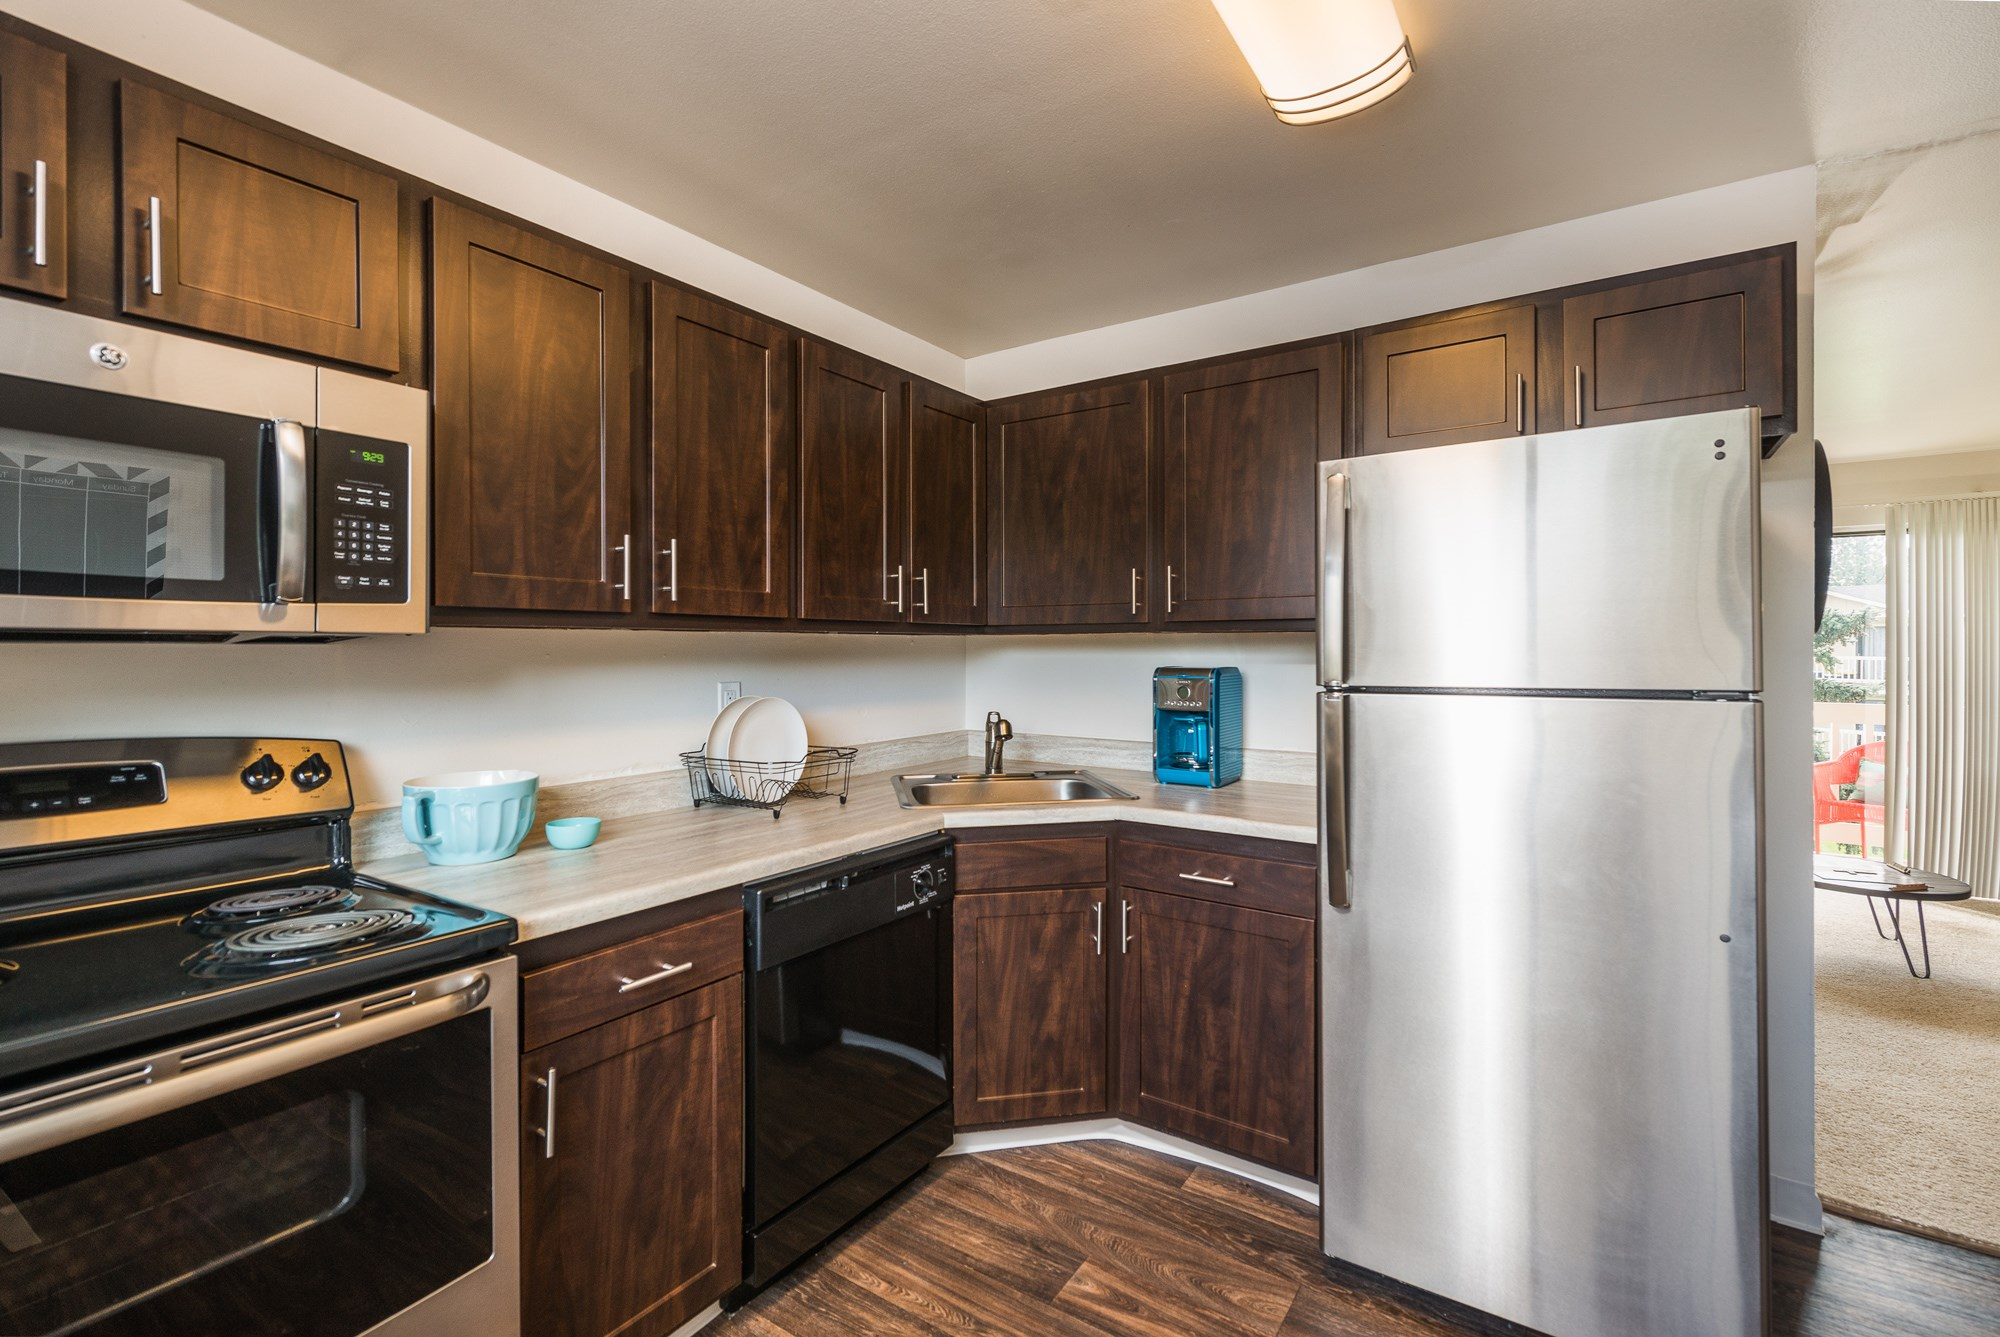 Kitchen at Village Gardens Apartments in Fort Collins, CO